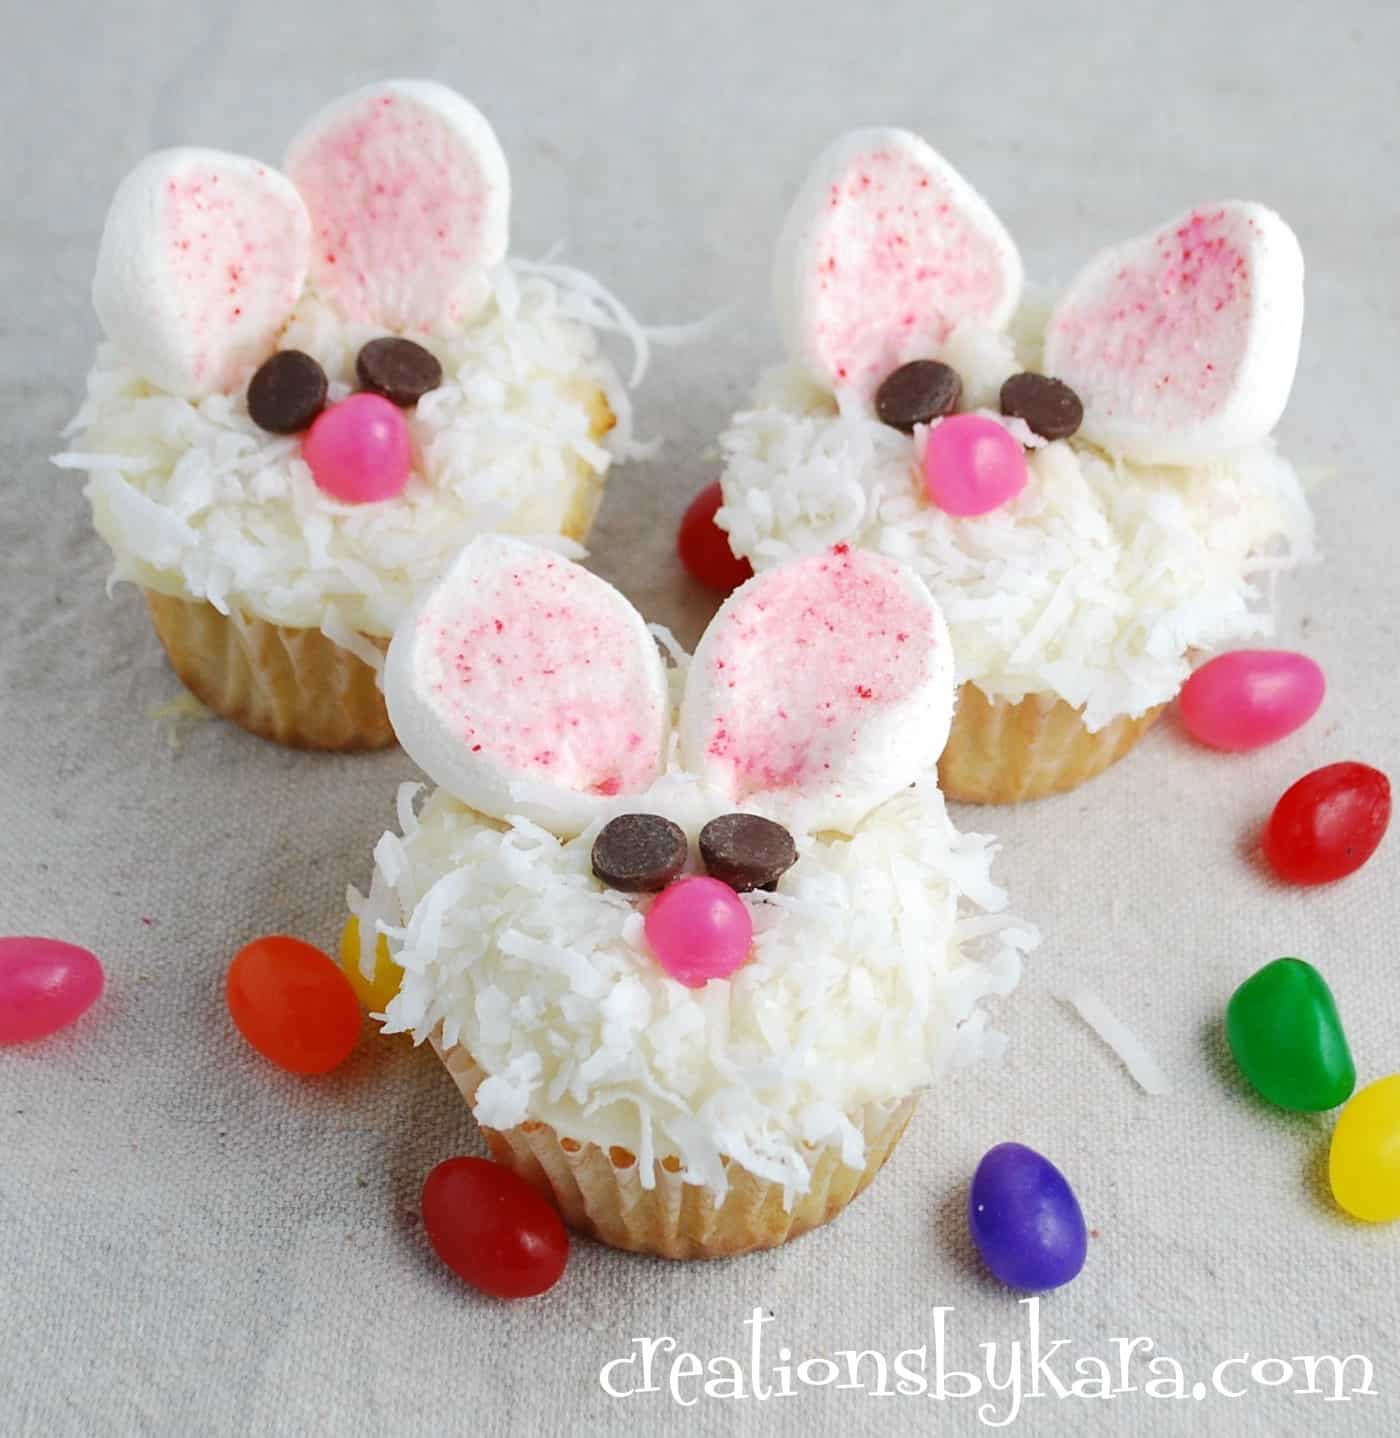 Easter Bunny Desserts  Cute Easter Cupcakes